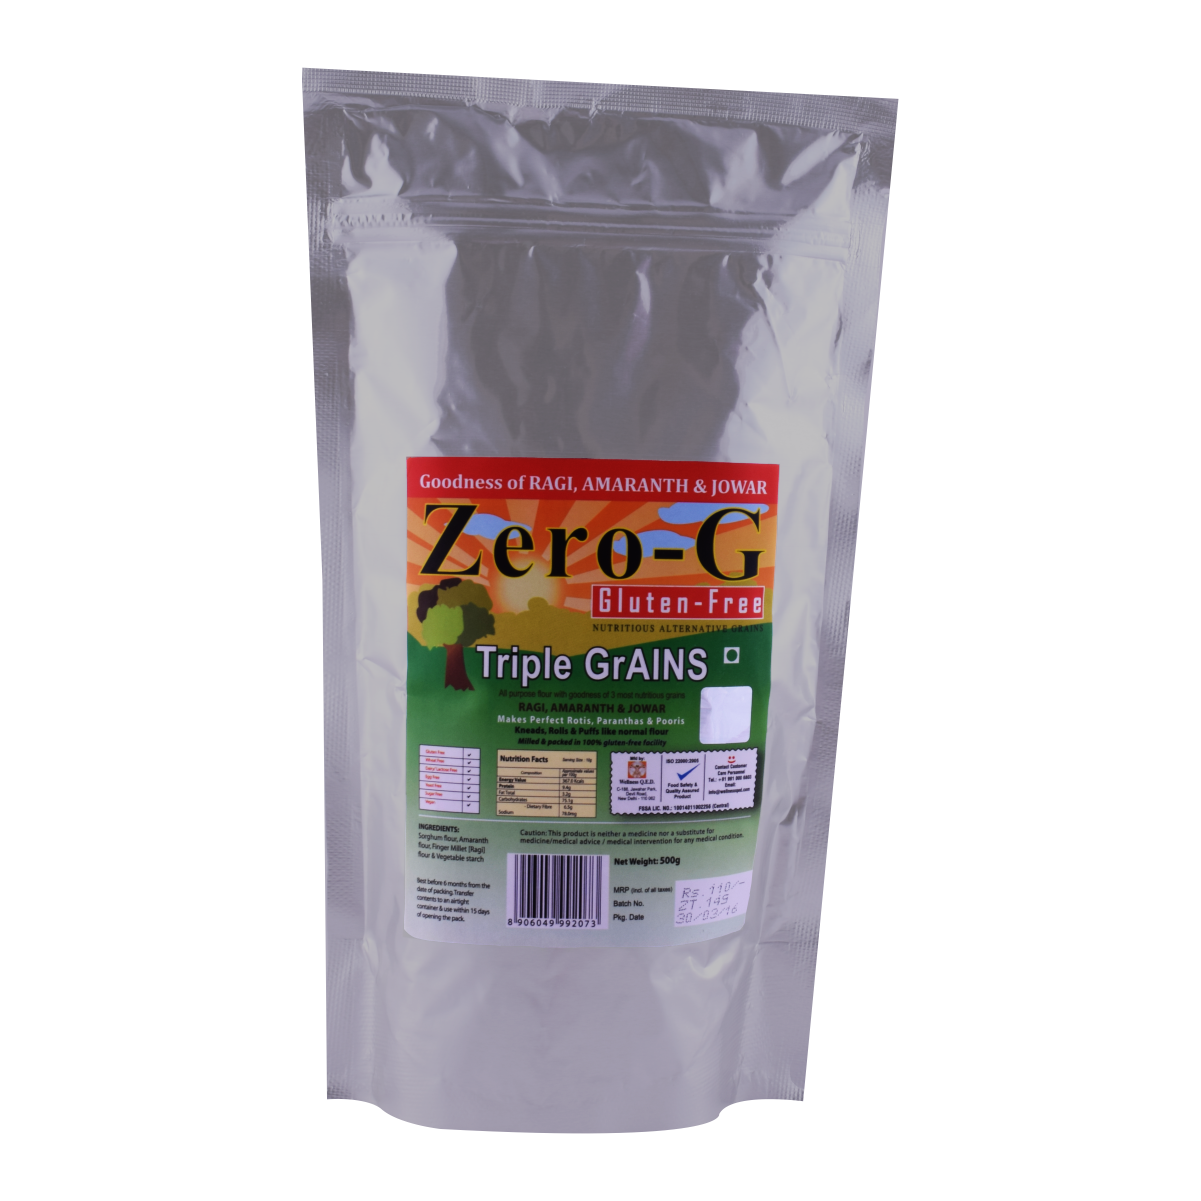 Zero-G Triple GrAINS